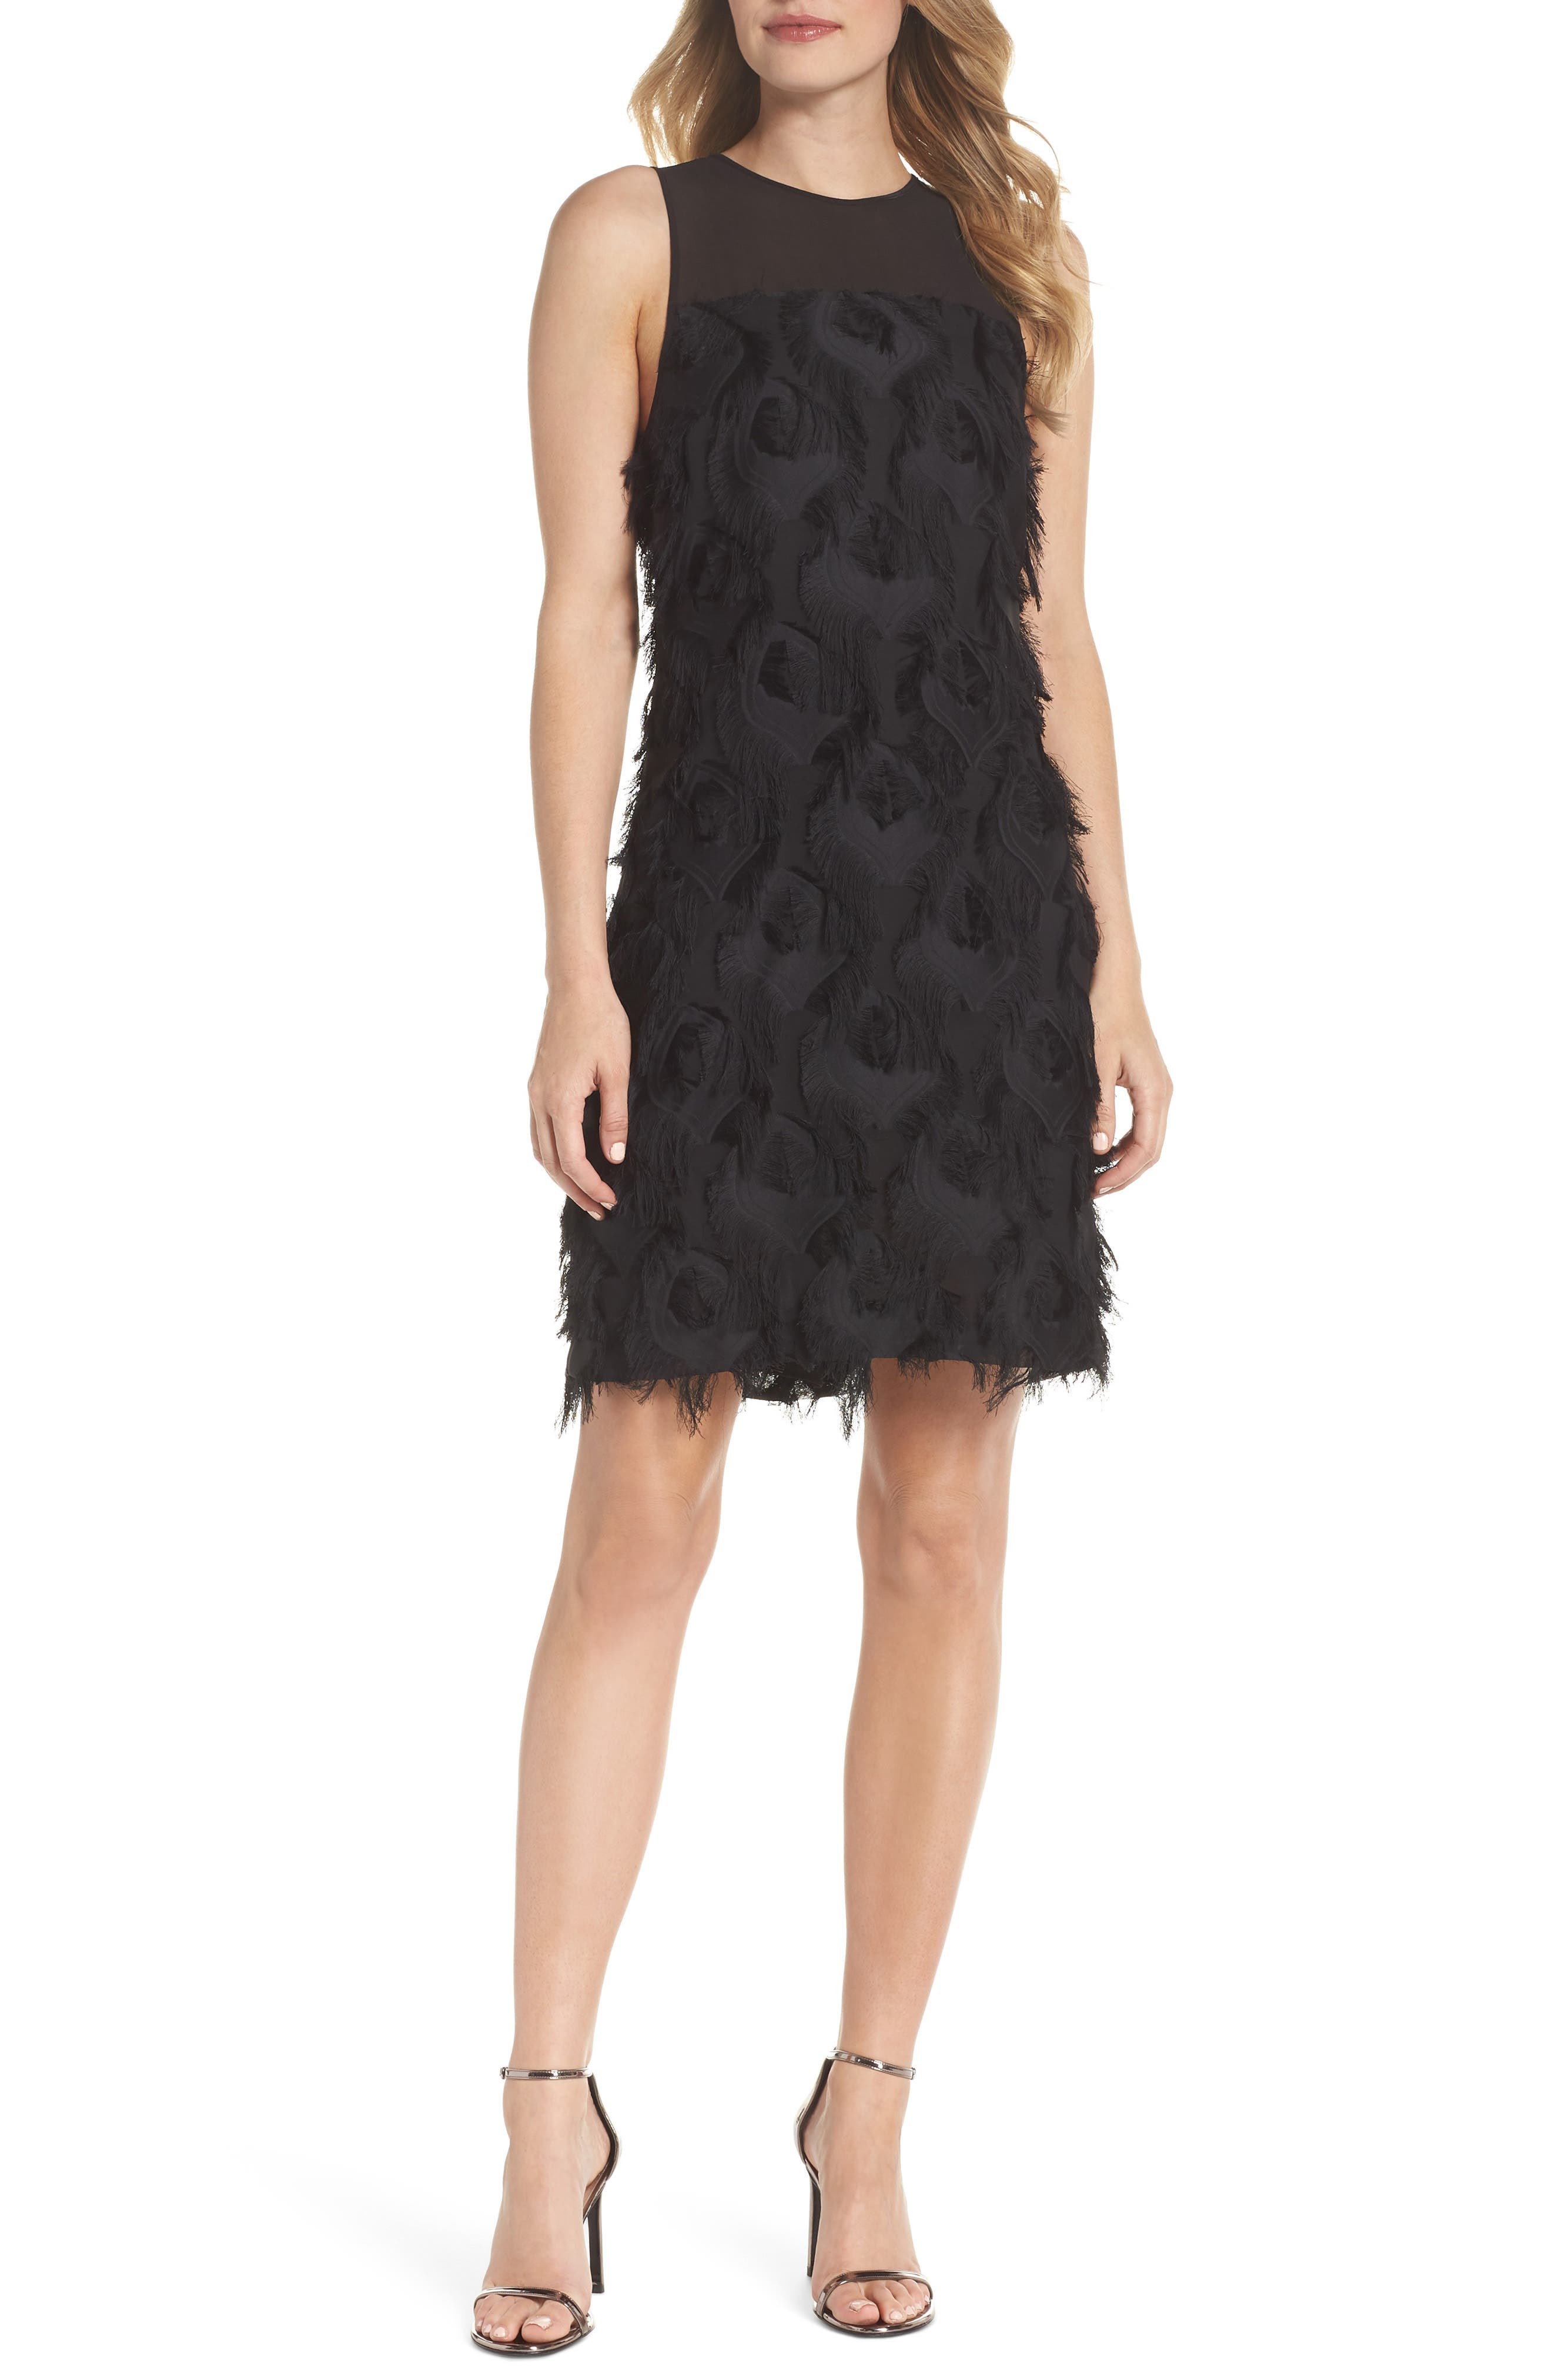 Jacquard Peacock Feather Dress in Black